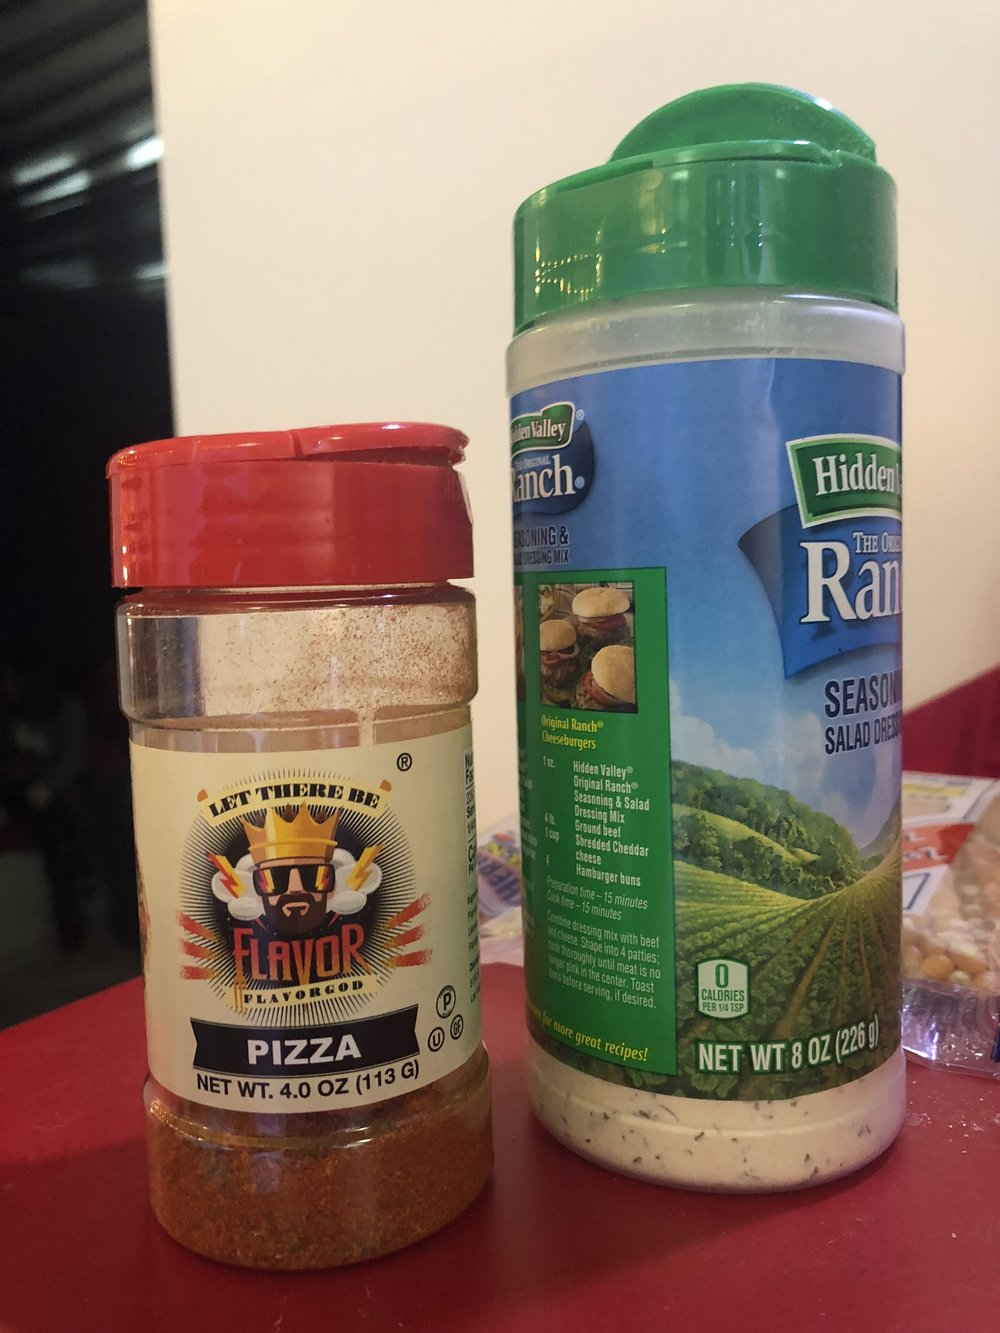 Spotted: Flavor God Pizza seasoning